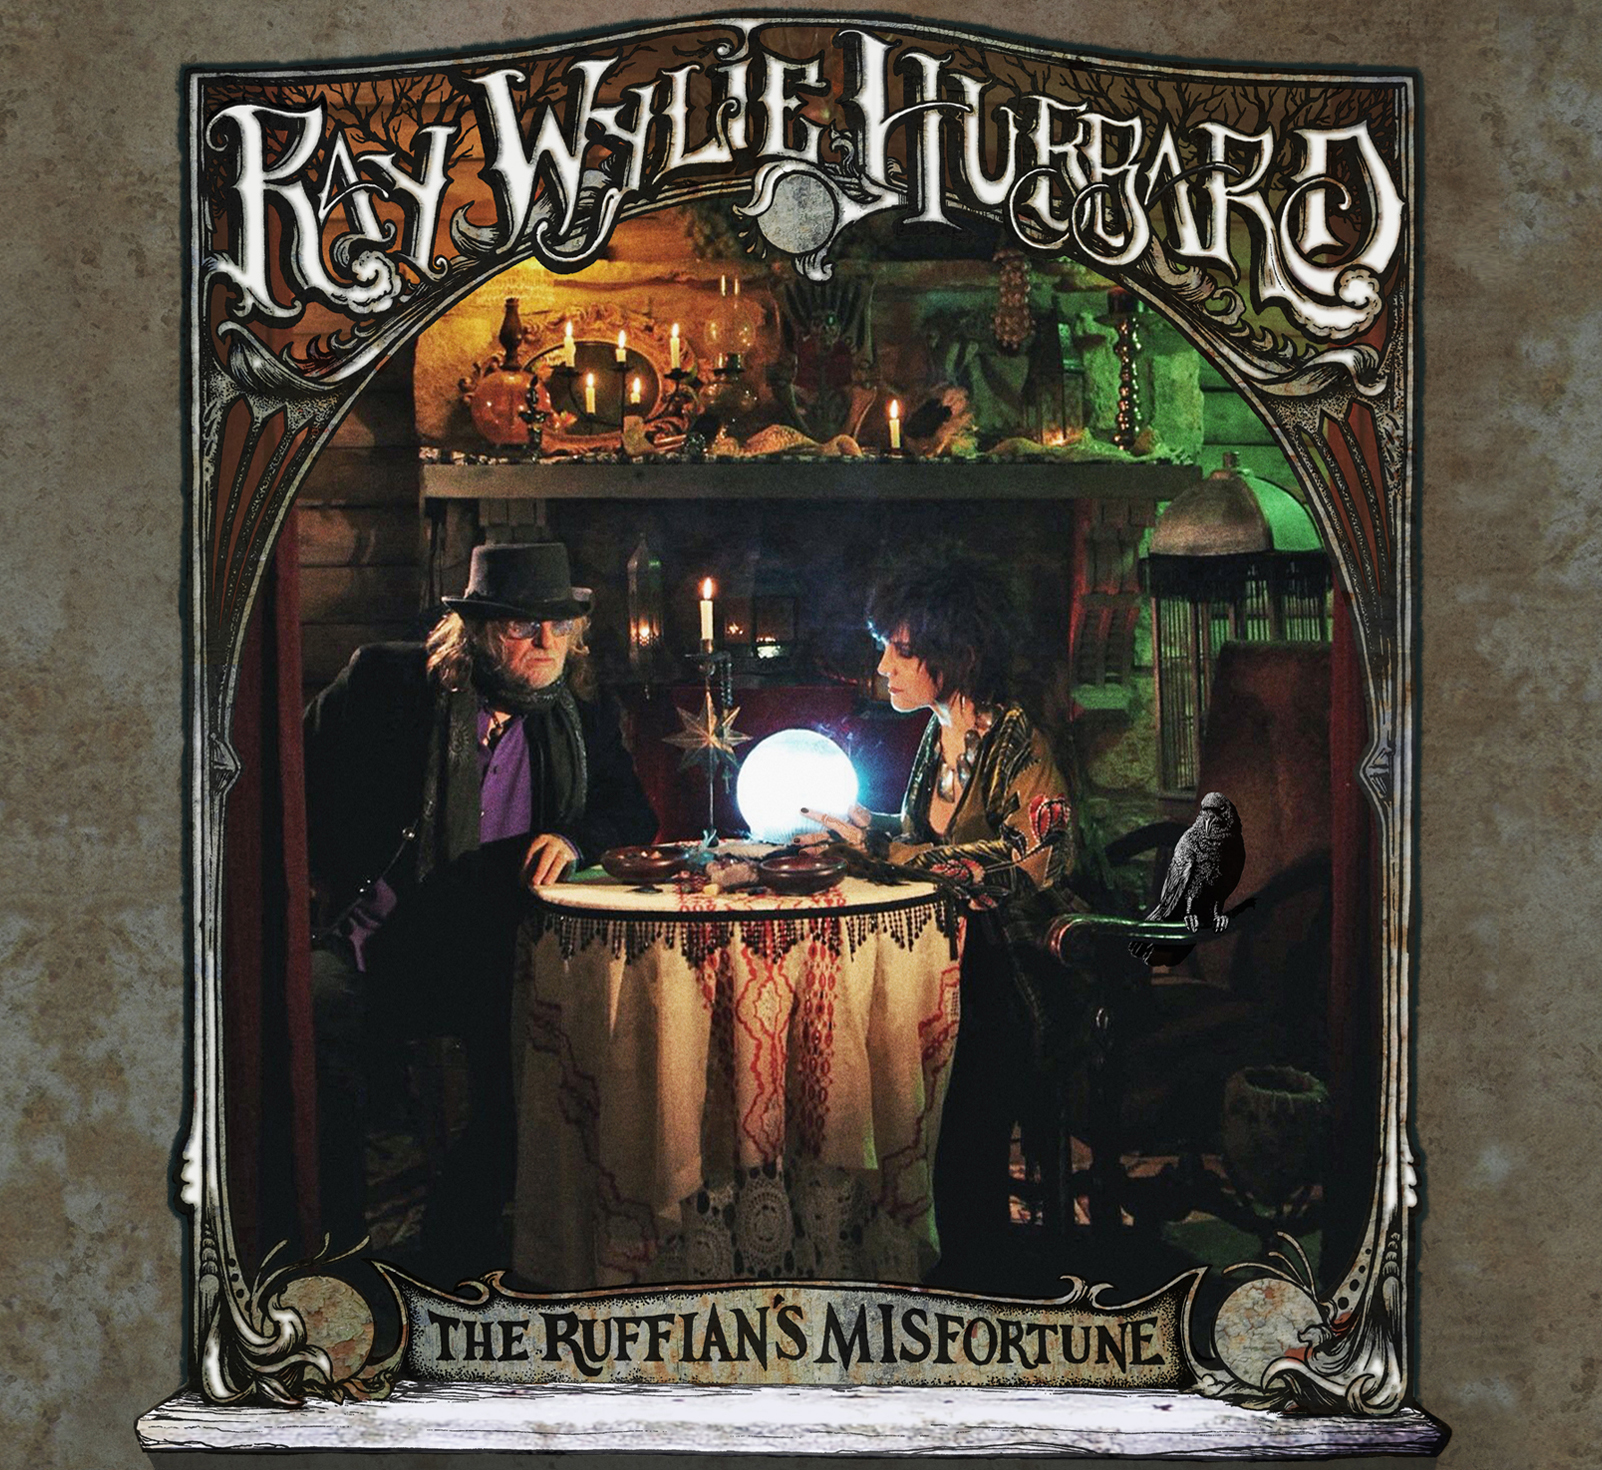 The Ruffians Misfortune - Ray Wylie Hubbard